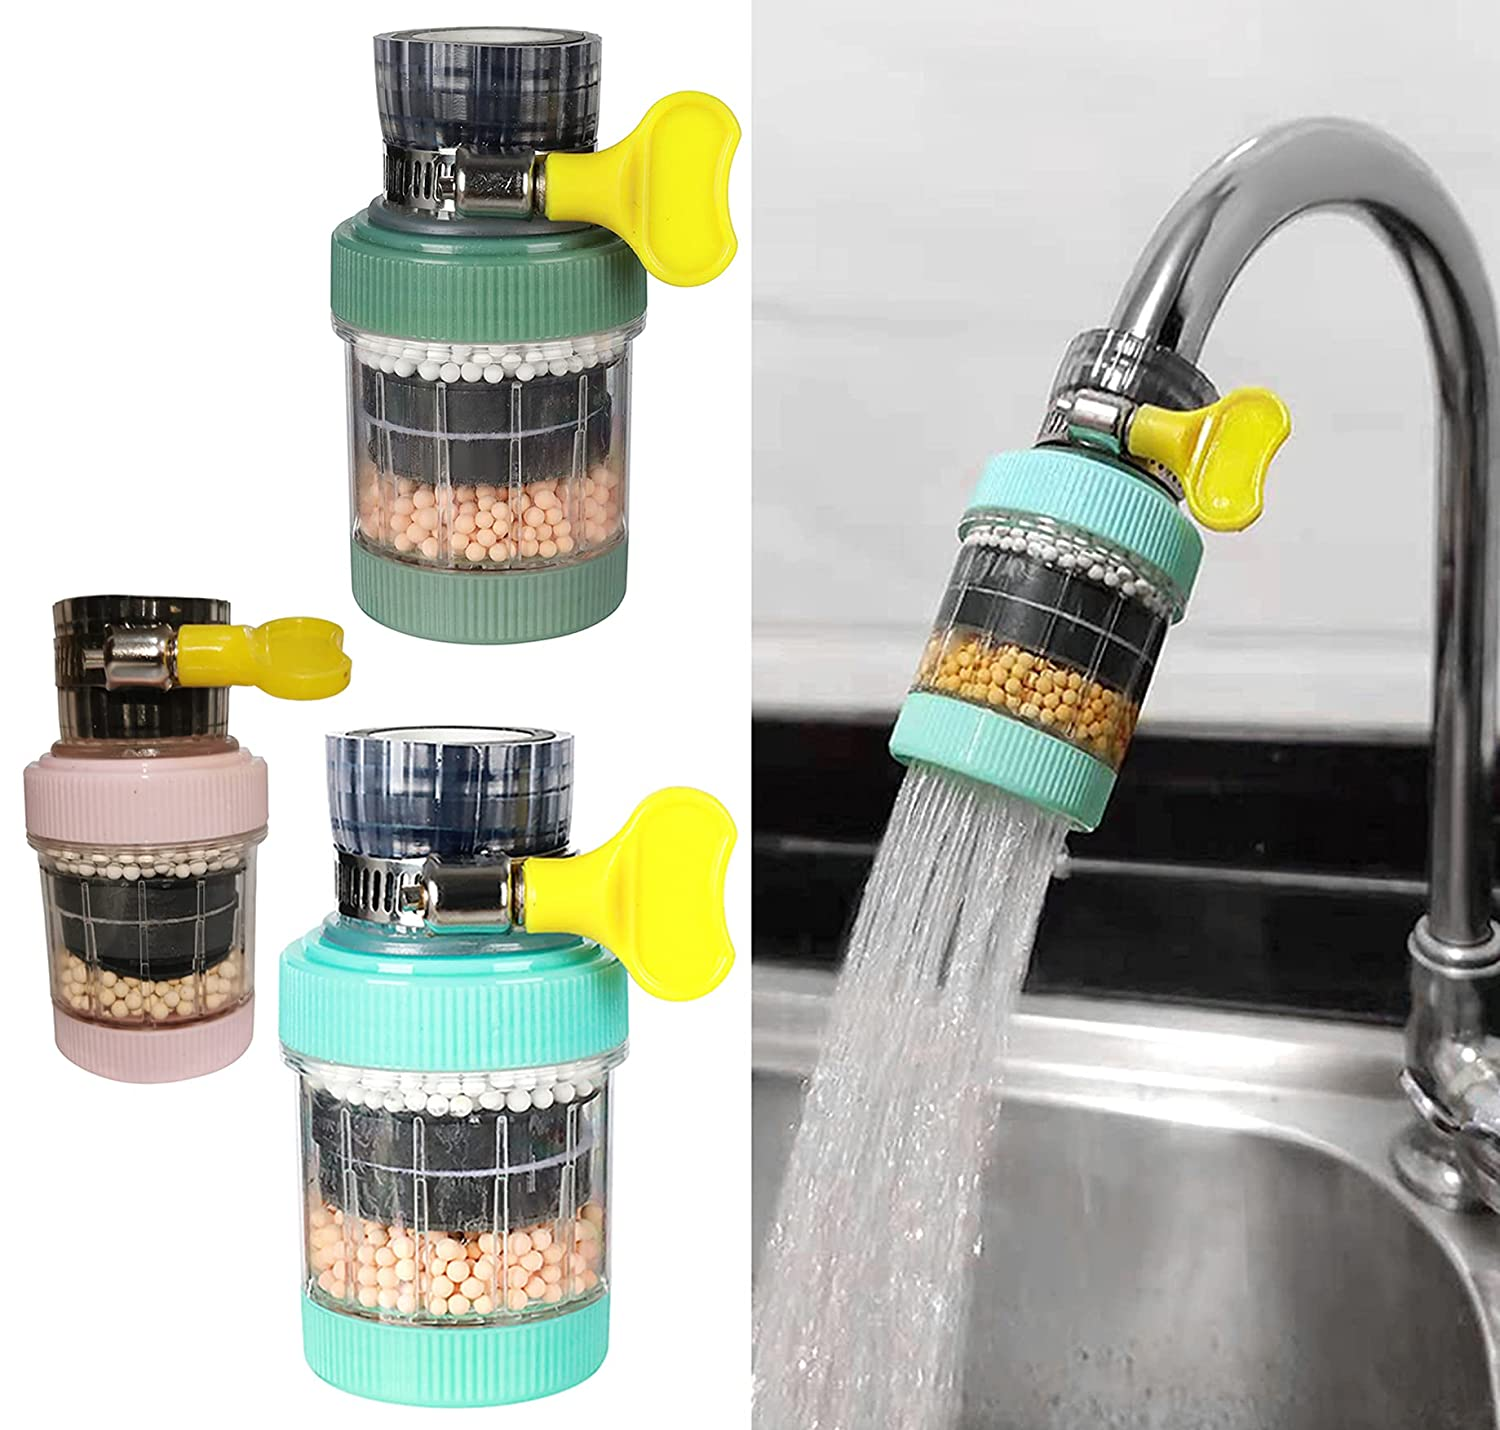 Faucet Mount Filters,3 Pack Faucet Water Filter Purifier Kitchen Tap Filtration Activated Carbon Removes Chlorine Fluoride Heavy Metals Hard Water for Home Kitchen Bathroom